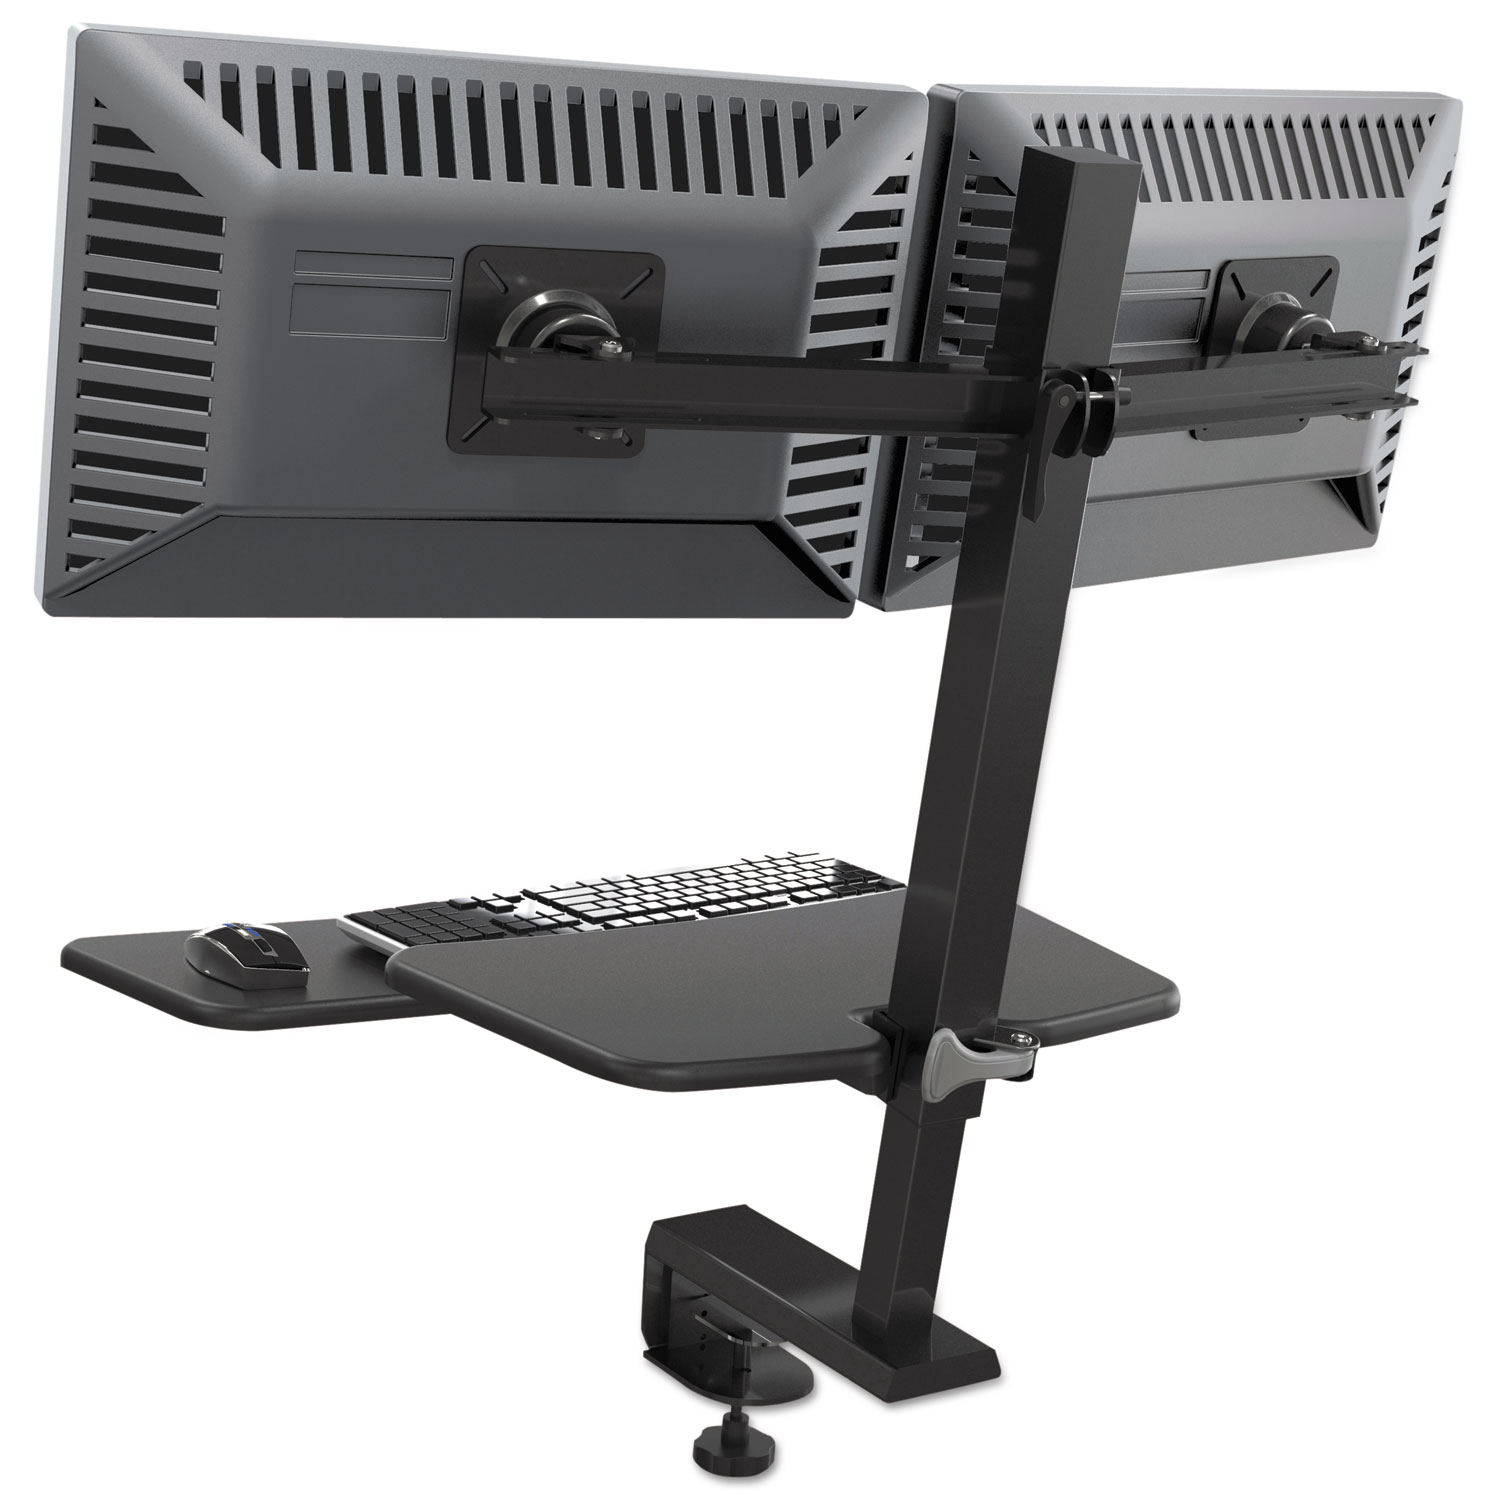 Up Rite Desk Mounted Sit Stand Workstation By Balt